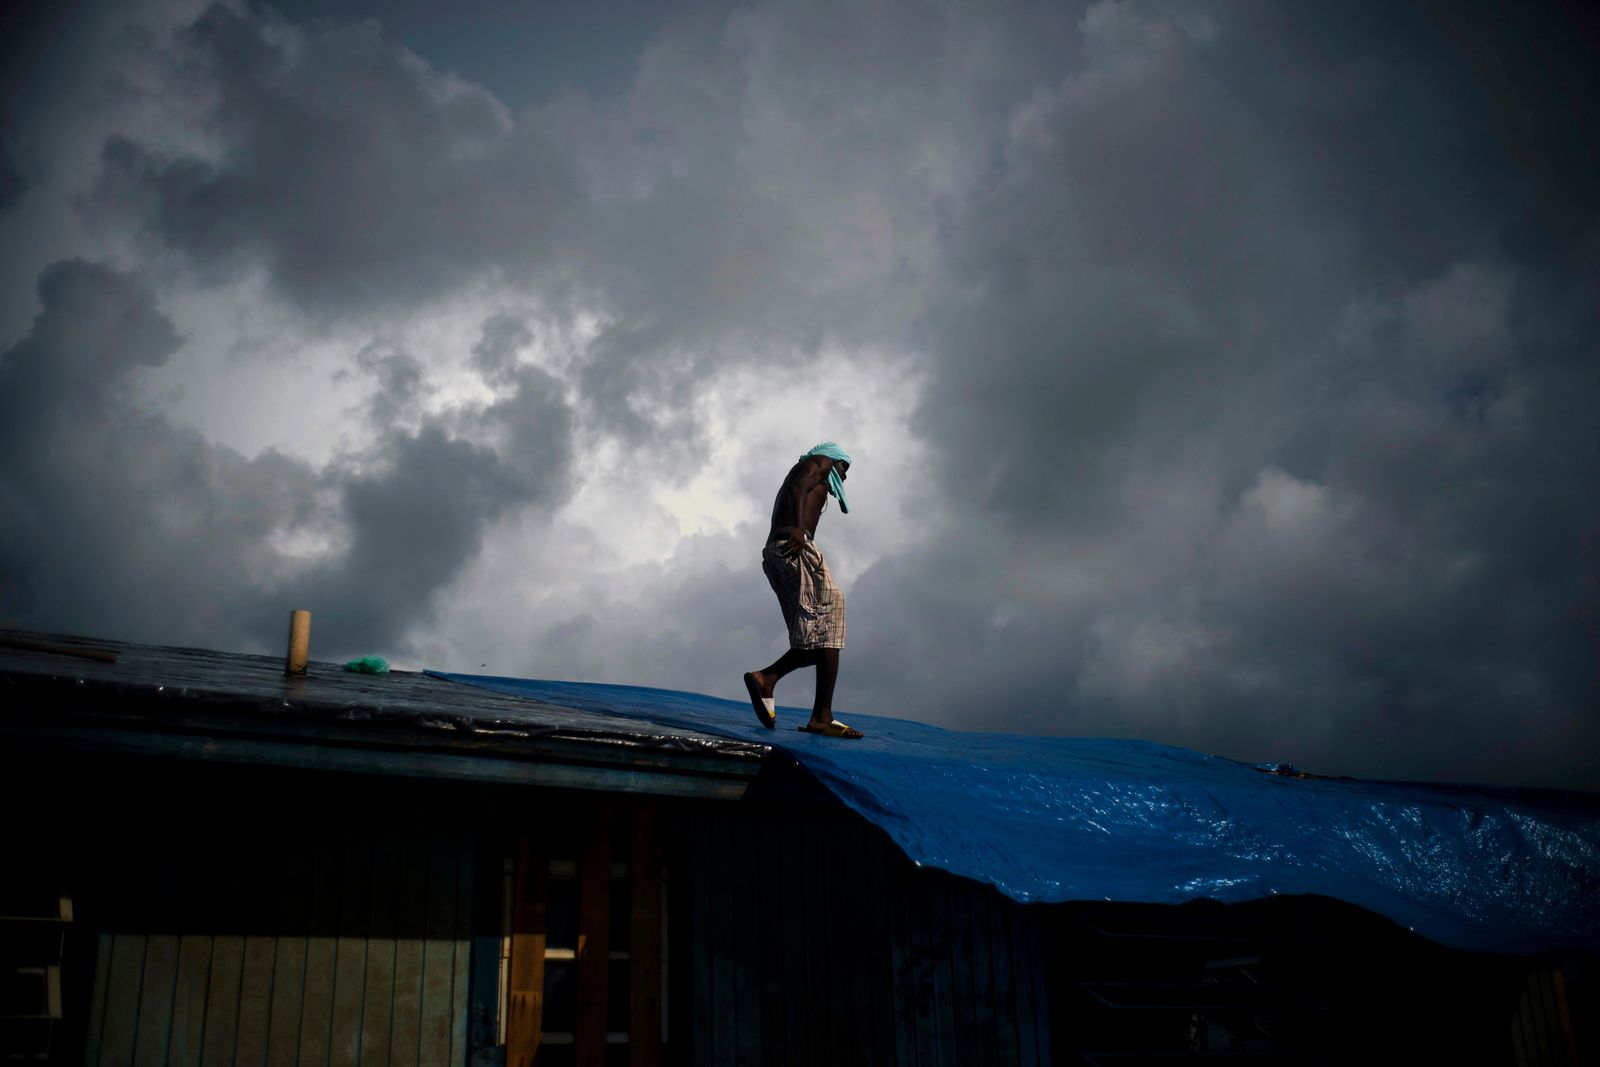 "Trevon Laing walks the roof of his house to repair the damage made by Hurricane Dorian, in Gold Rock Creek, Grand Bahama, Bahamas, Thursday Sept. 12, 2019. Trevor says ""After the hurricane they had me for dead, My momma was crying."" When he returned, he said he found his brother crying on the front porch.""I'm like, 'Hey, I'm not dead! You guys have no faith in me. I'm a survivor,'"" he said, adding with a laugh, ""He was shocked and mad at the same time."" (AP Photo / Ramon Espinosa)"